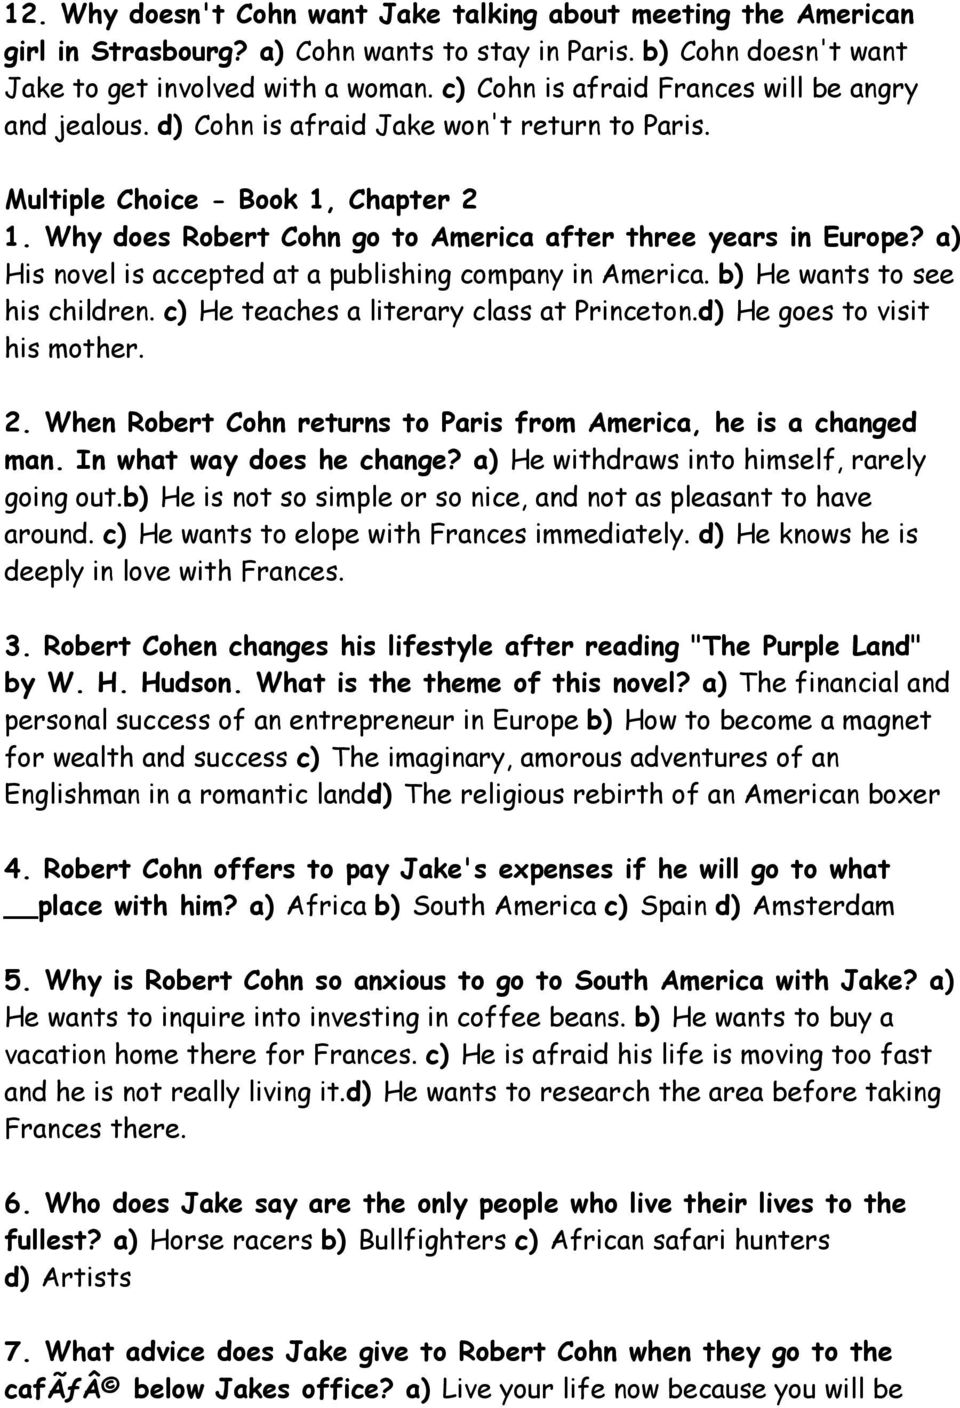 Why does Robert Cohn go to America after three years in Europe? a) His novel is accepted at a publishing company in America. b) He wants to see his children.